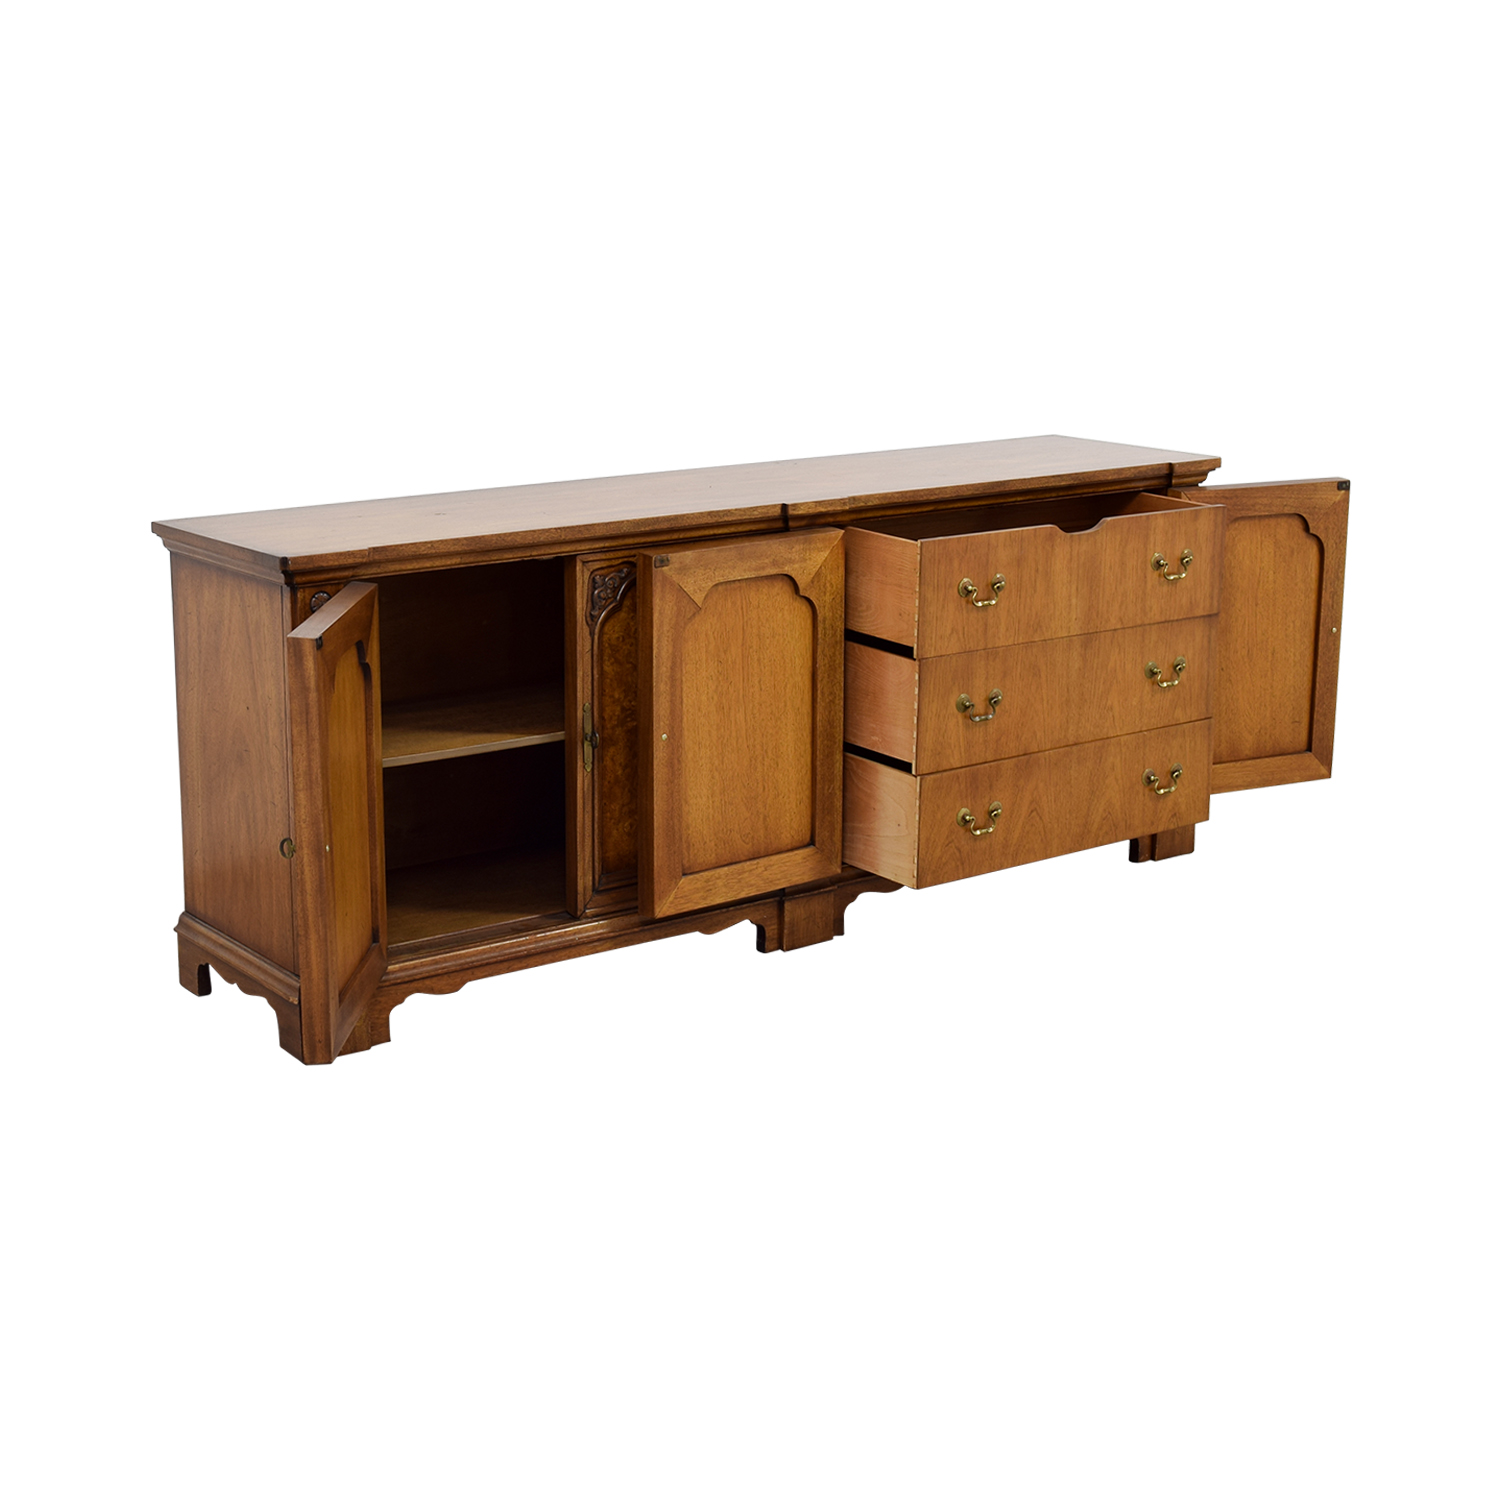 Ornate Wooden Buffet / Cabinets & Sideboards